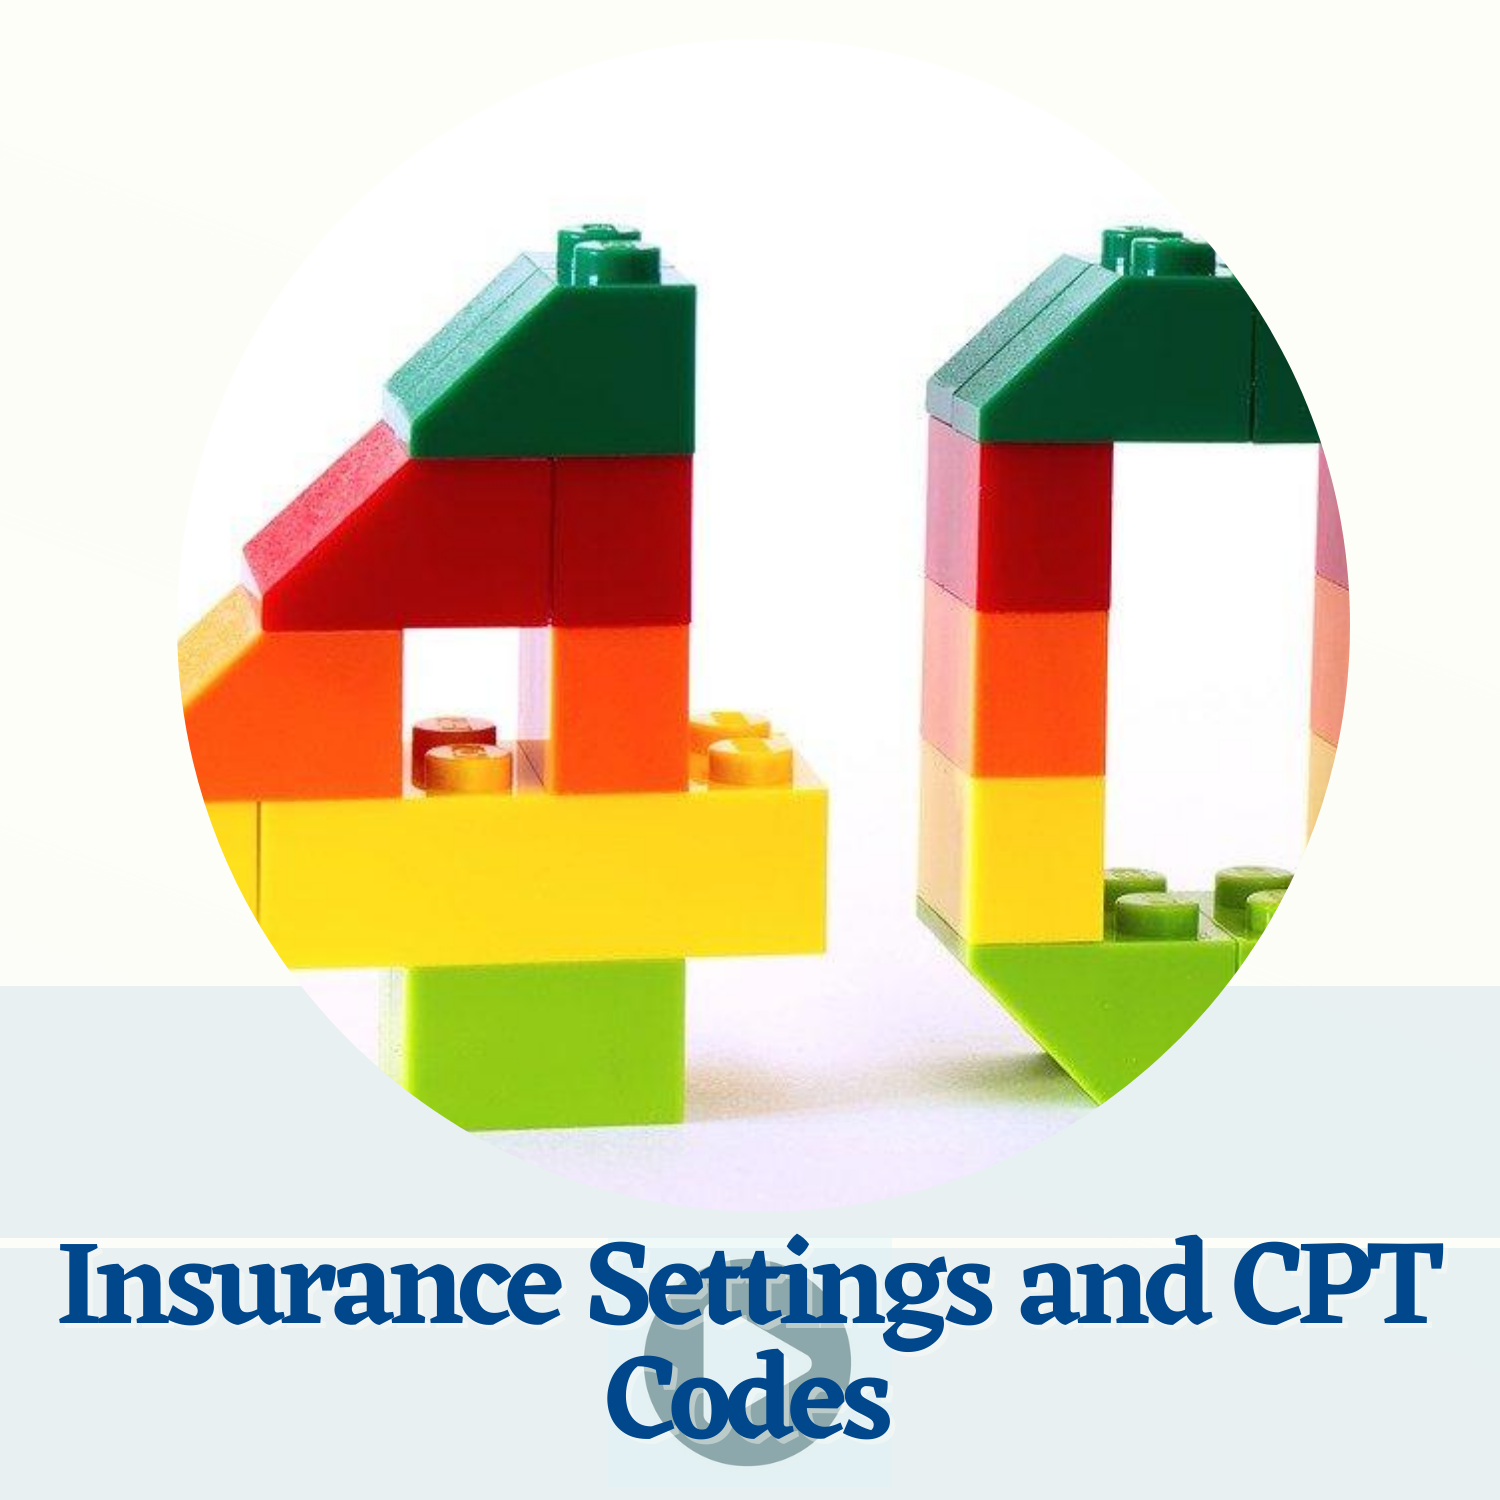 Insurance Settings and CPT Codes